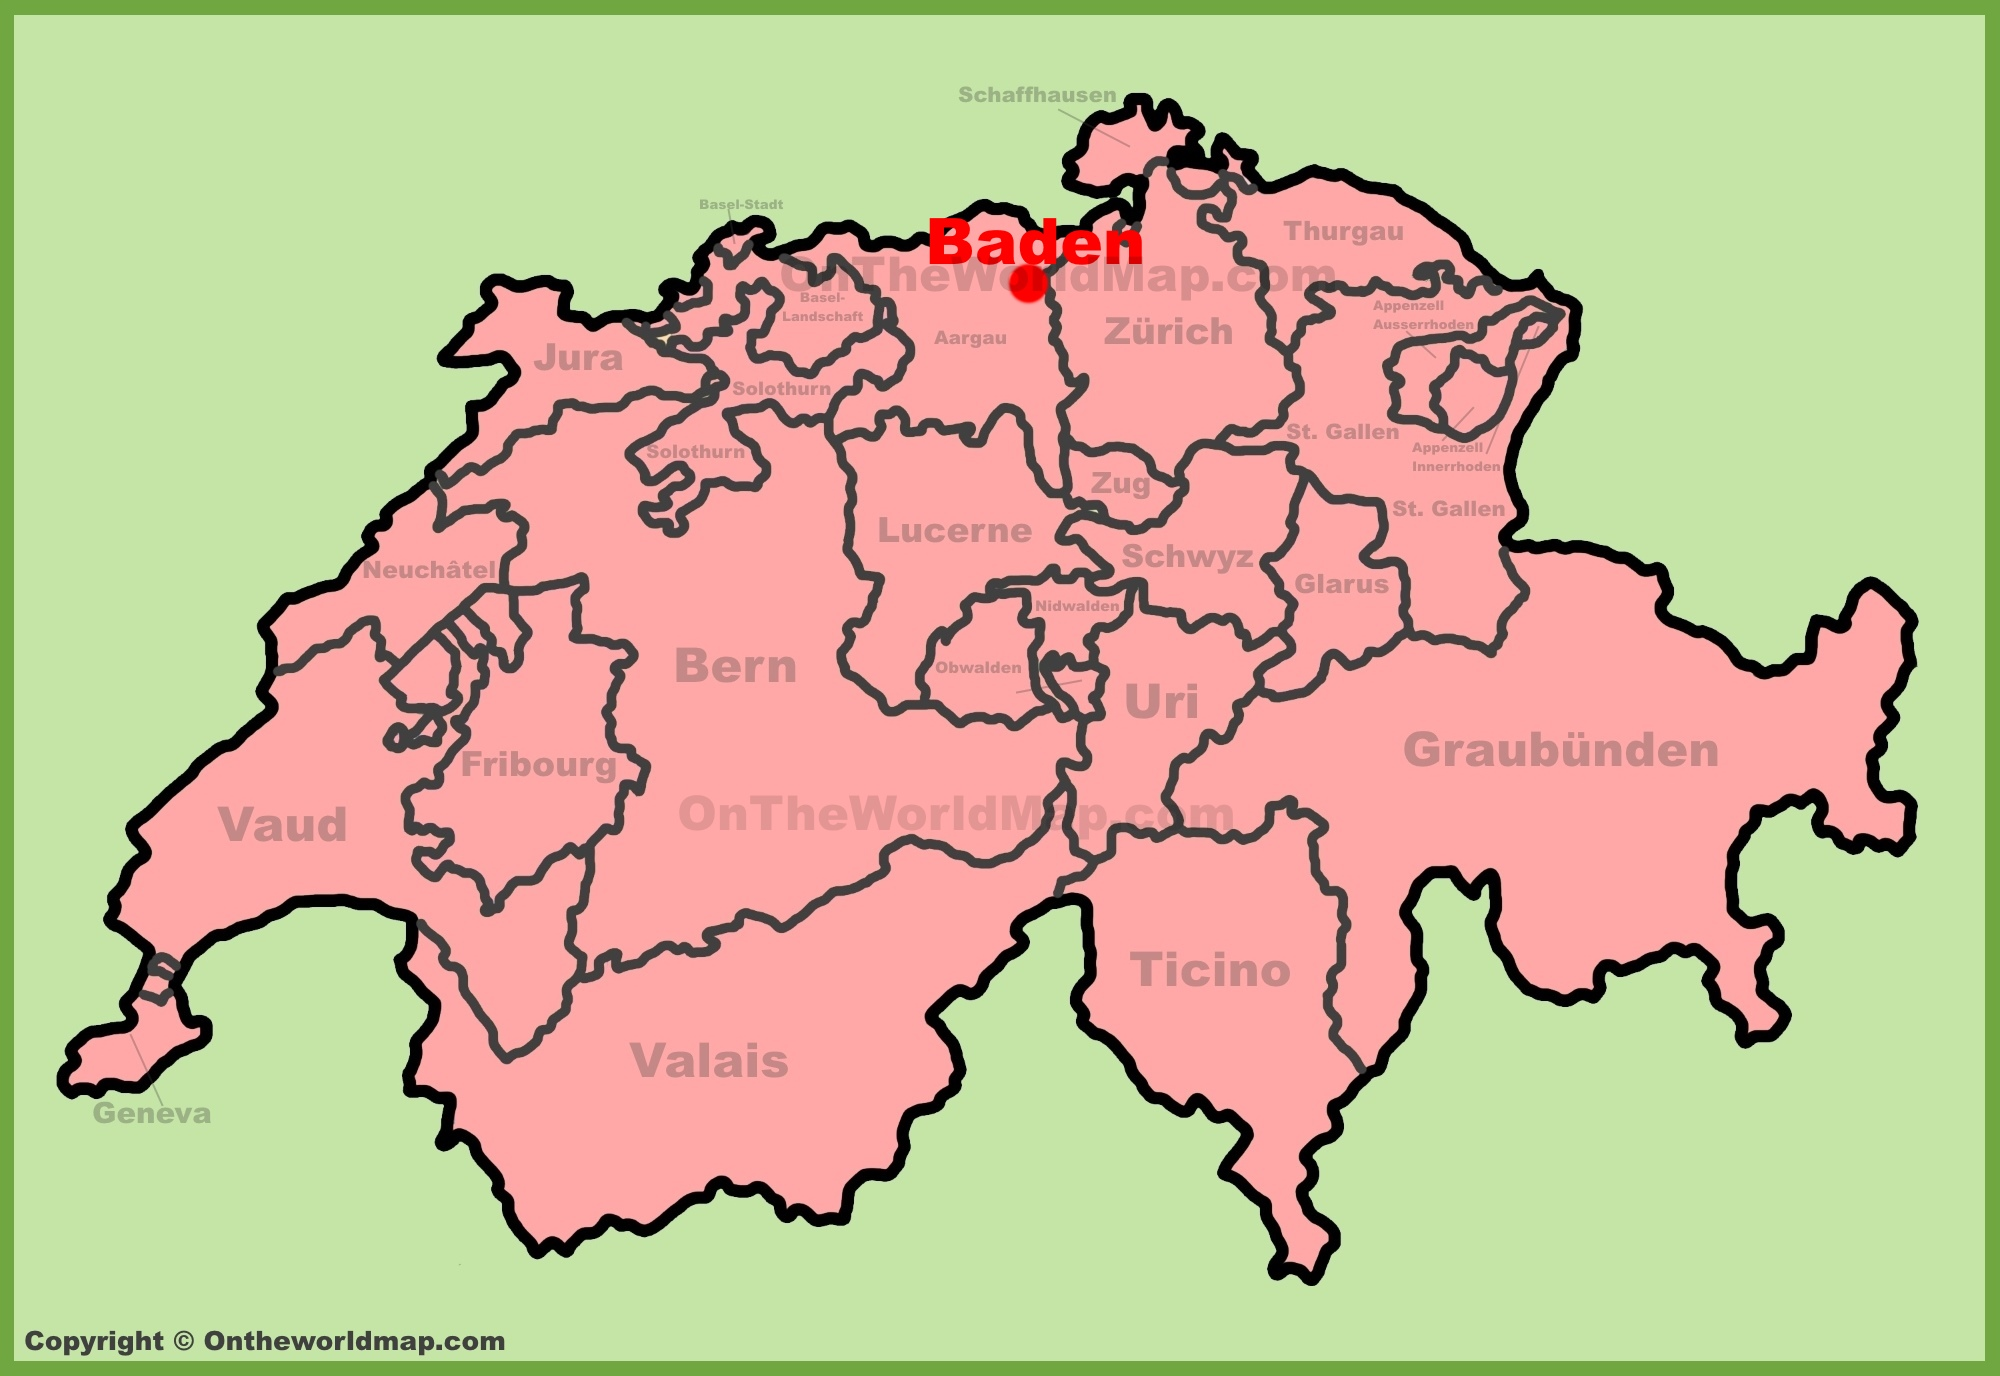 Baden location on the Switzerland map